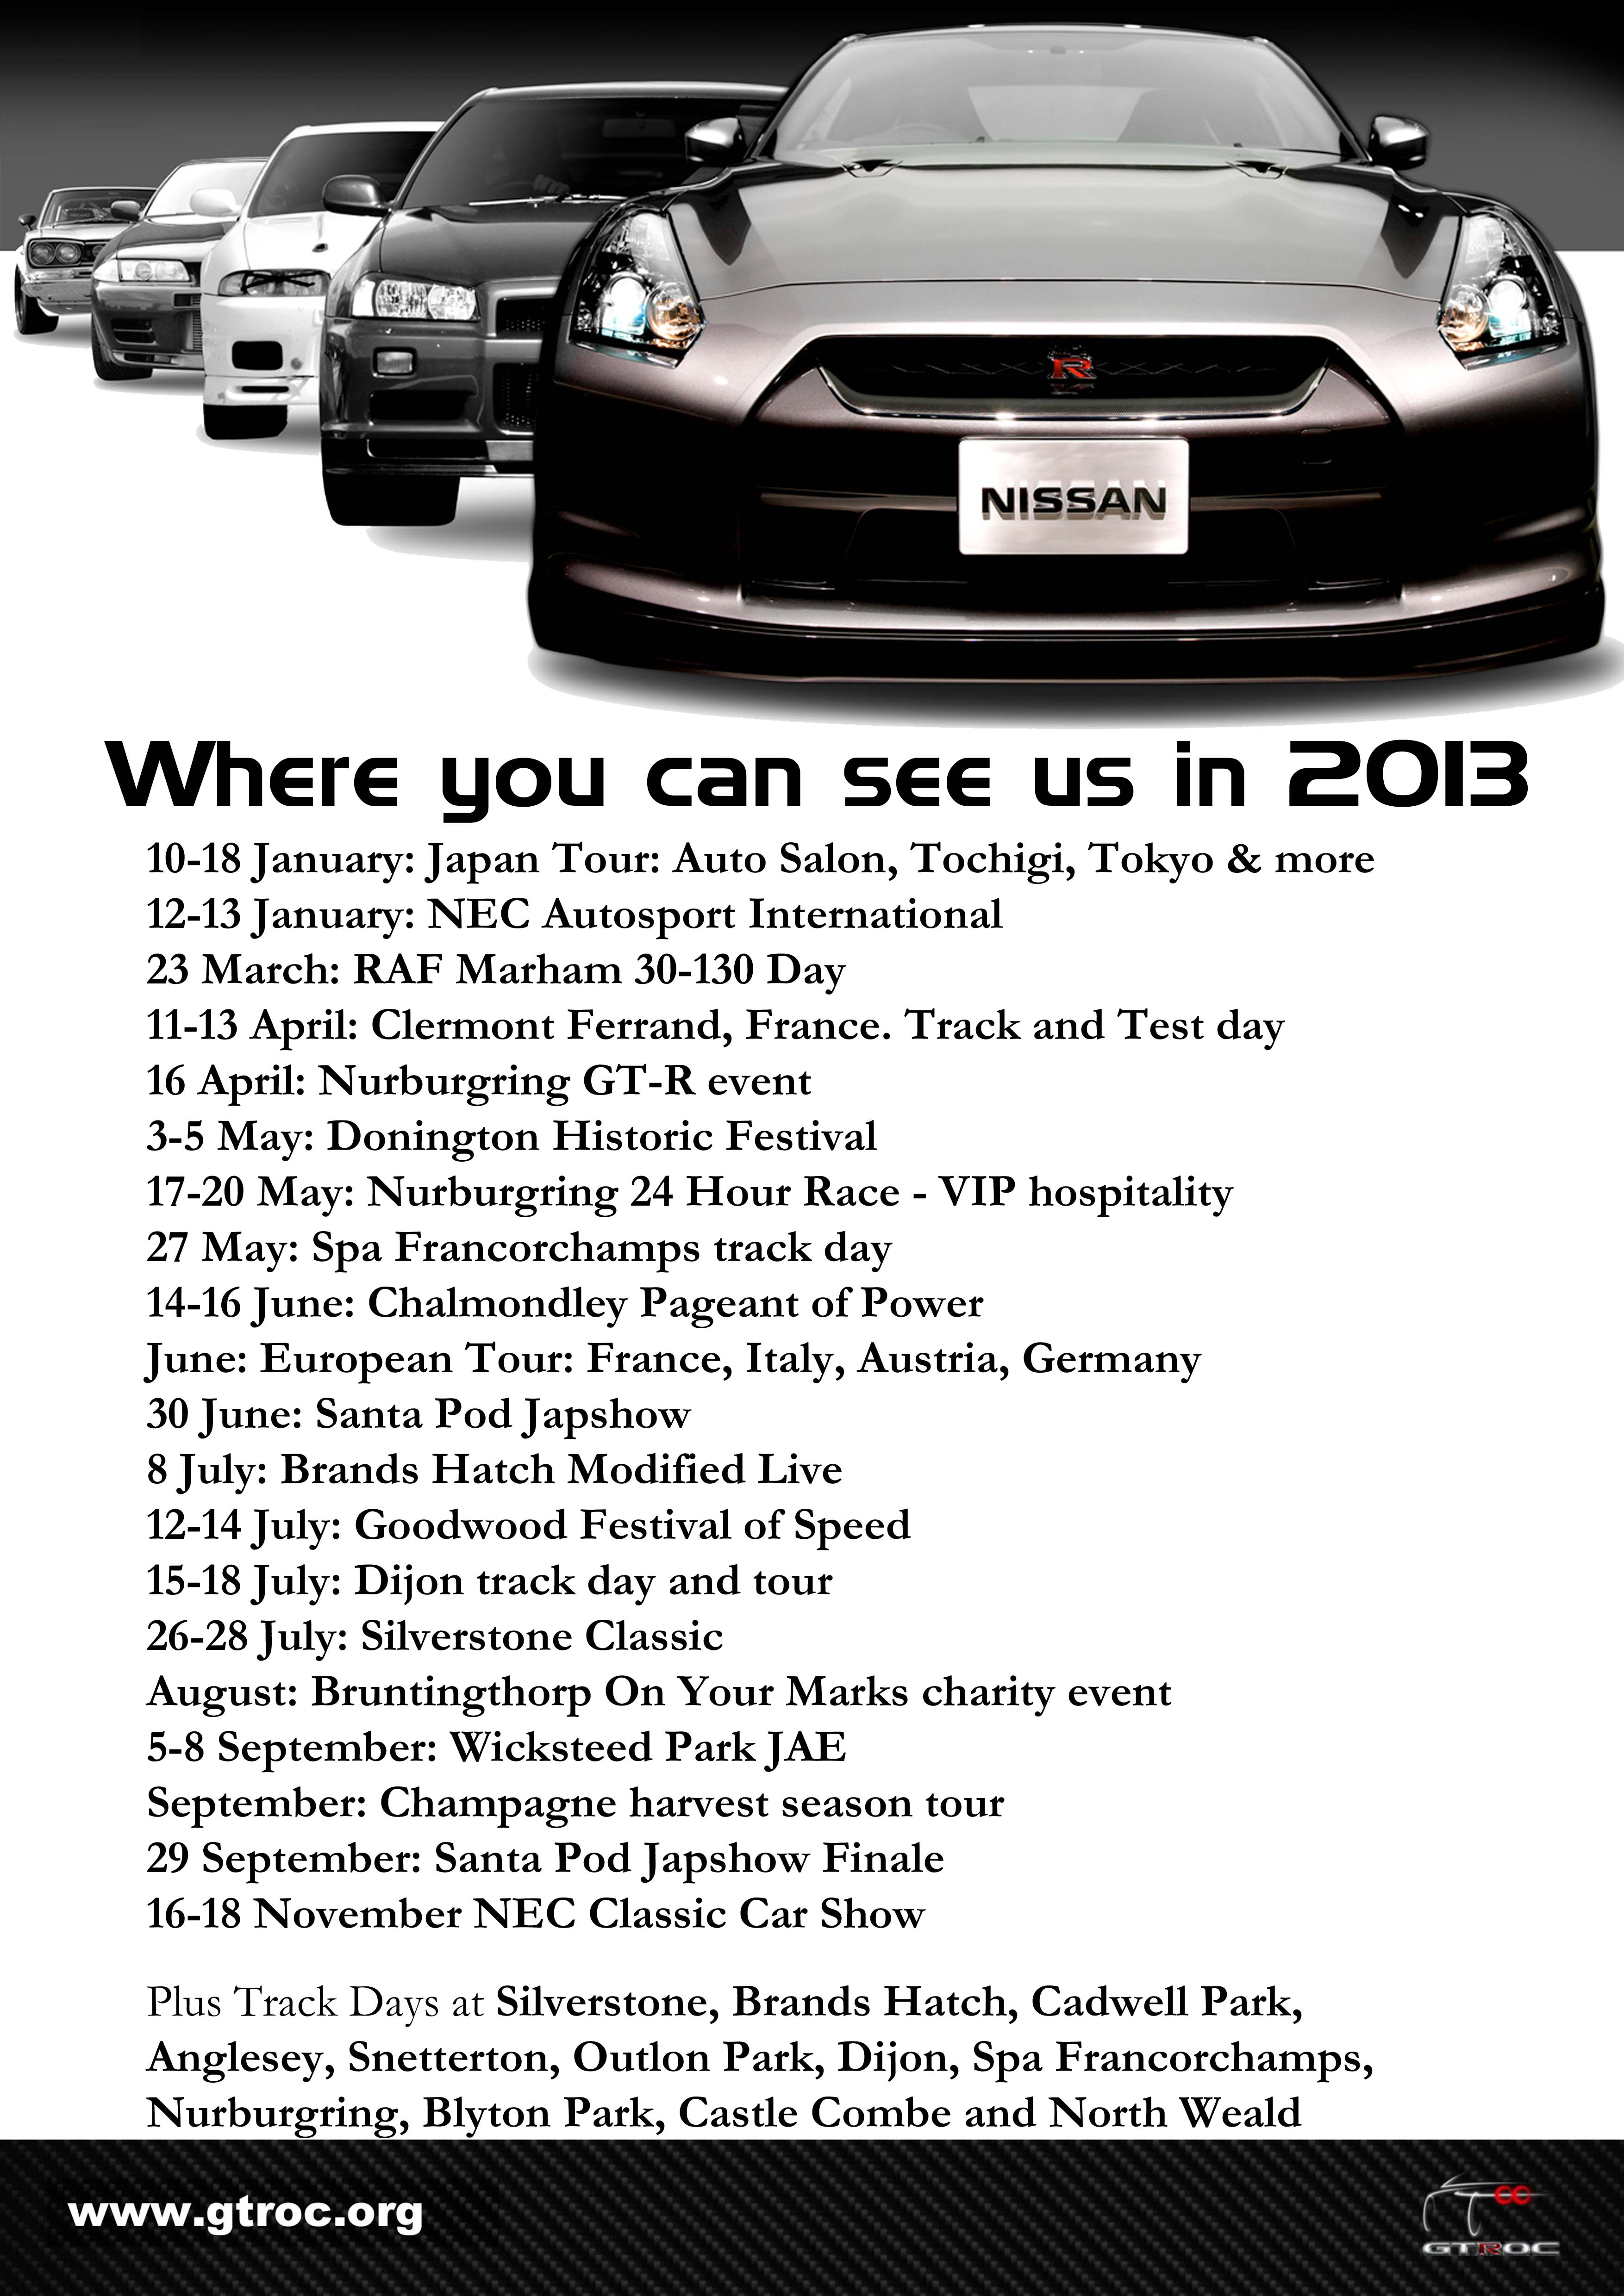 2013 events